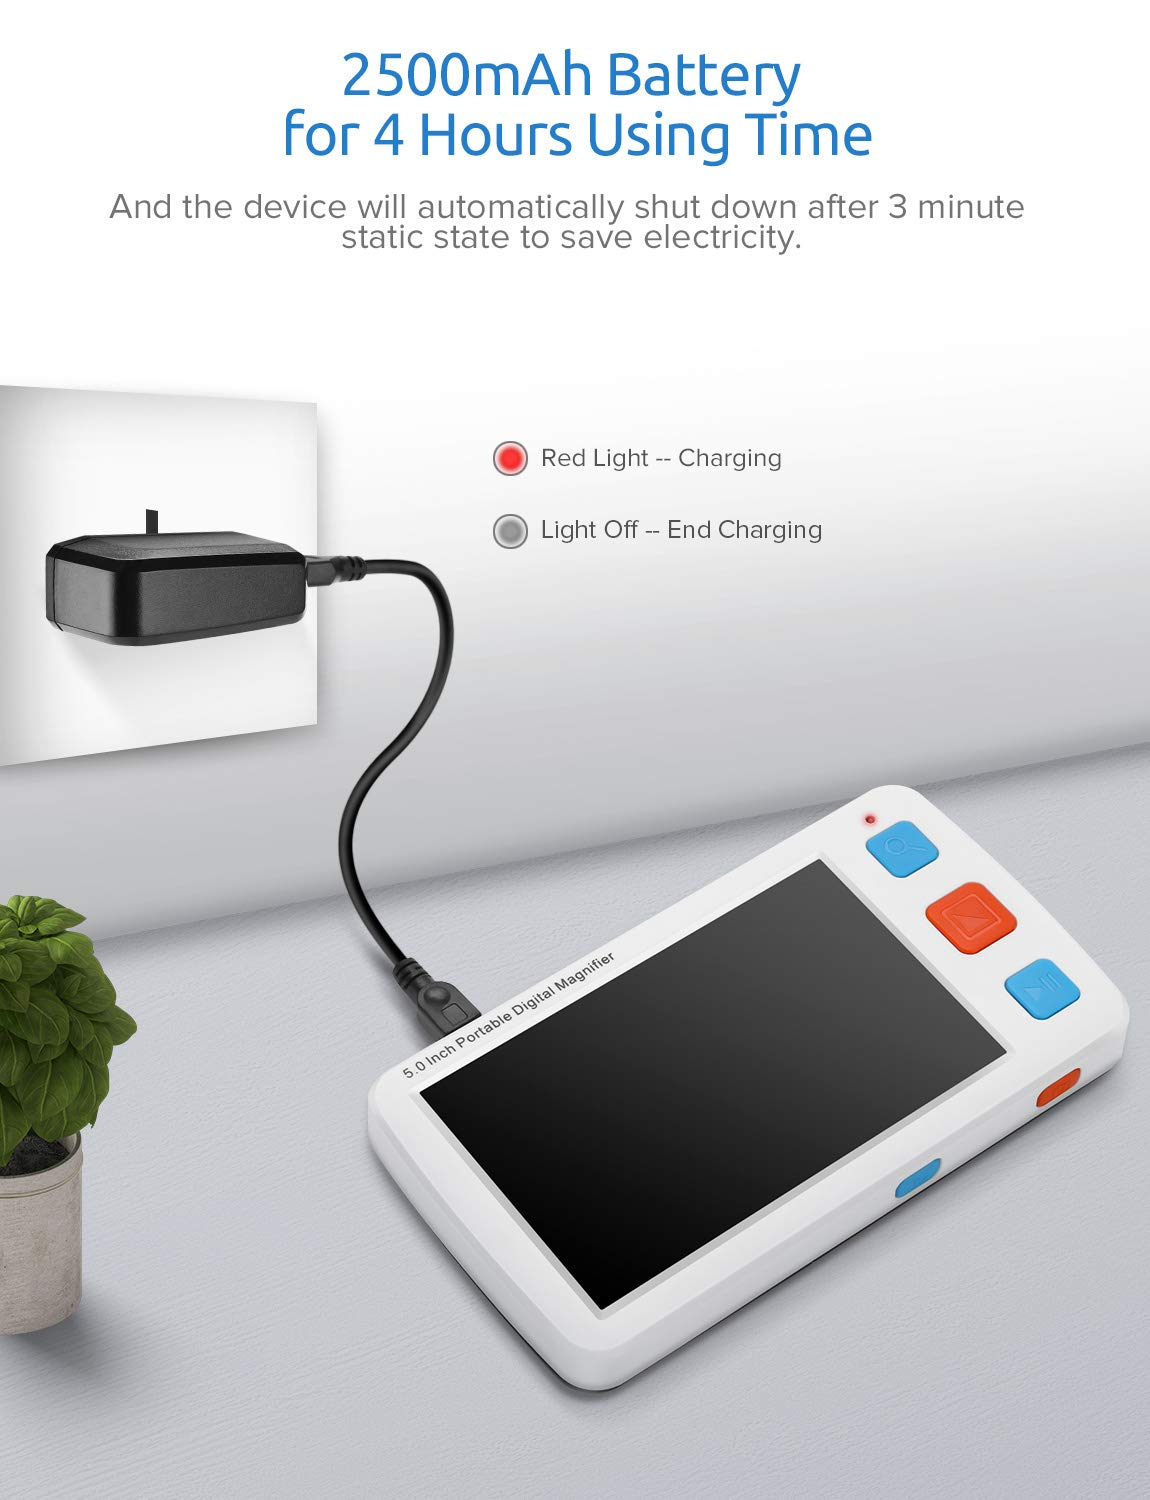 Eyoyo Portable Digital Magnifier Electronic Reading Aid 5.0 inch w/Foldable Handle for Low Vision Color Blindness 4X-32X Times Zoom 17 Color Modes 5 Levels for Brightness by Eyoyo (Image #7)